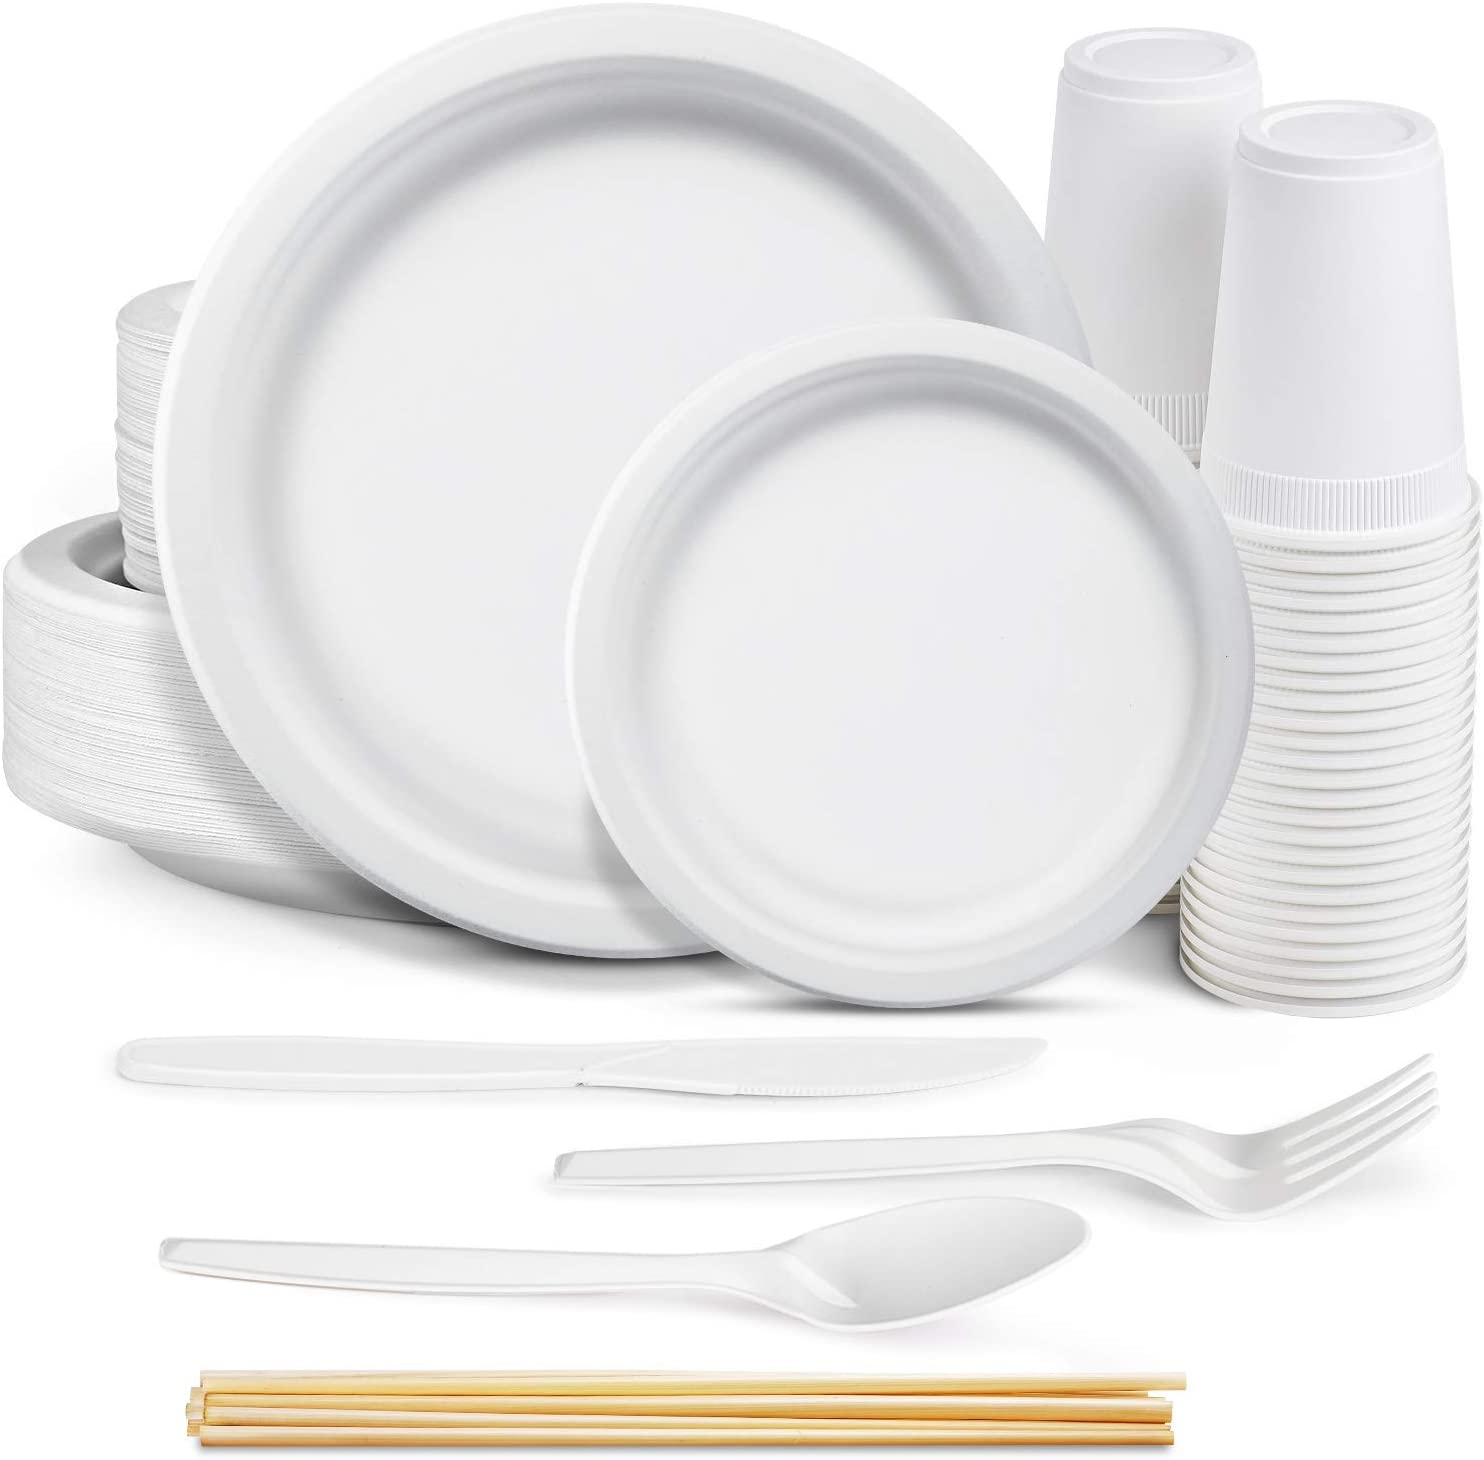 350pcs Compostable Paper Plates Biodegradable Disposable Heavy Duty Recycled Paper Plates Eco Friendly Disposable Utensils Dinner Plates Dessert Plates Forks Knives And Spoons 50 Each Amazon Ca Home Kitchen